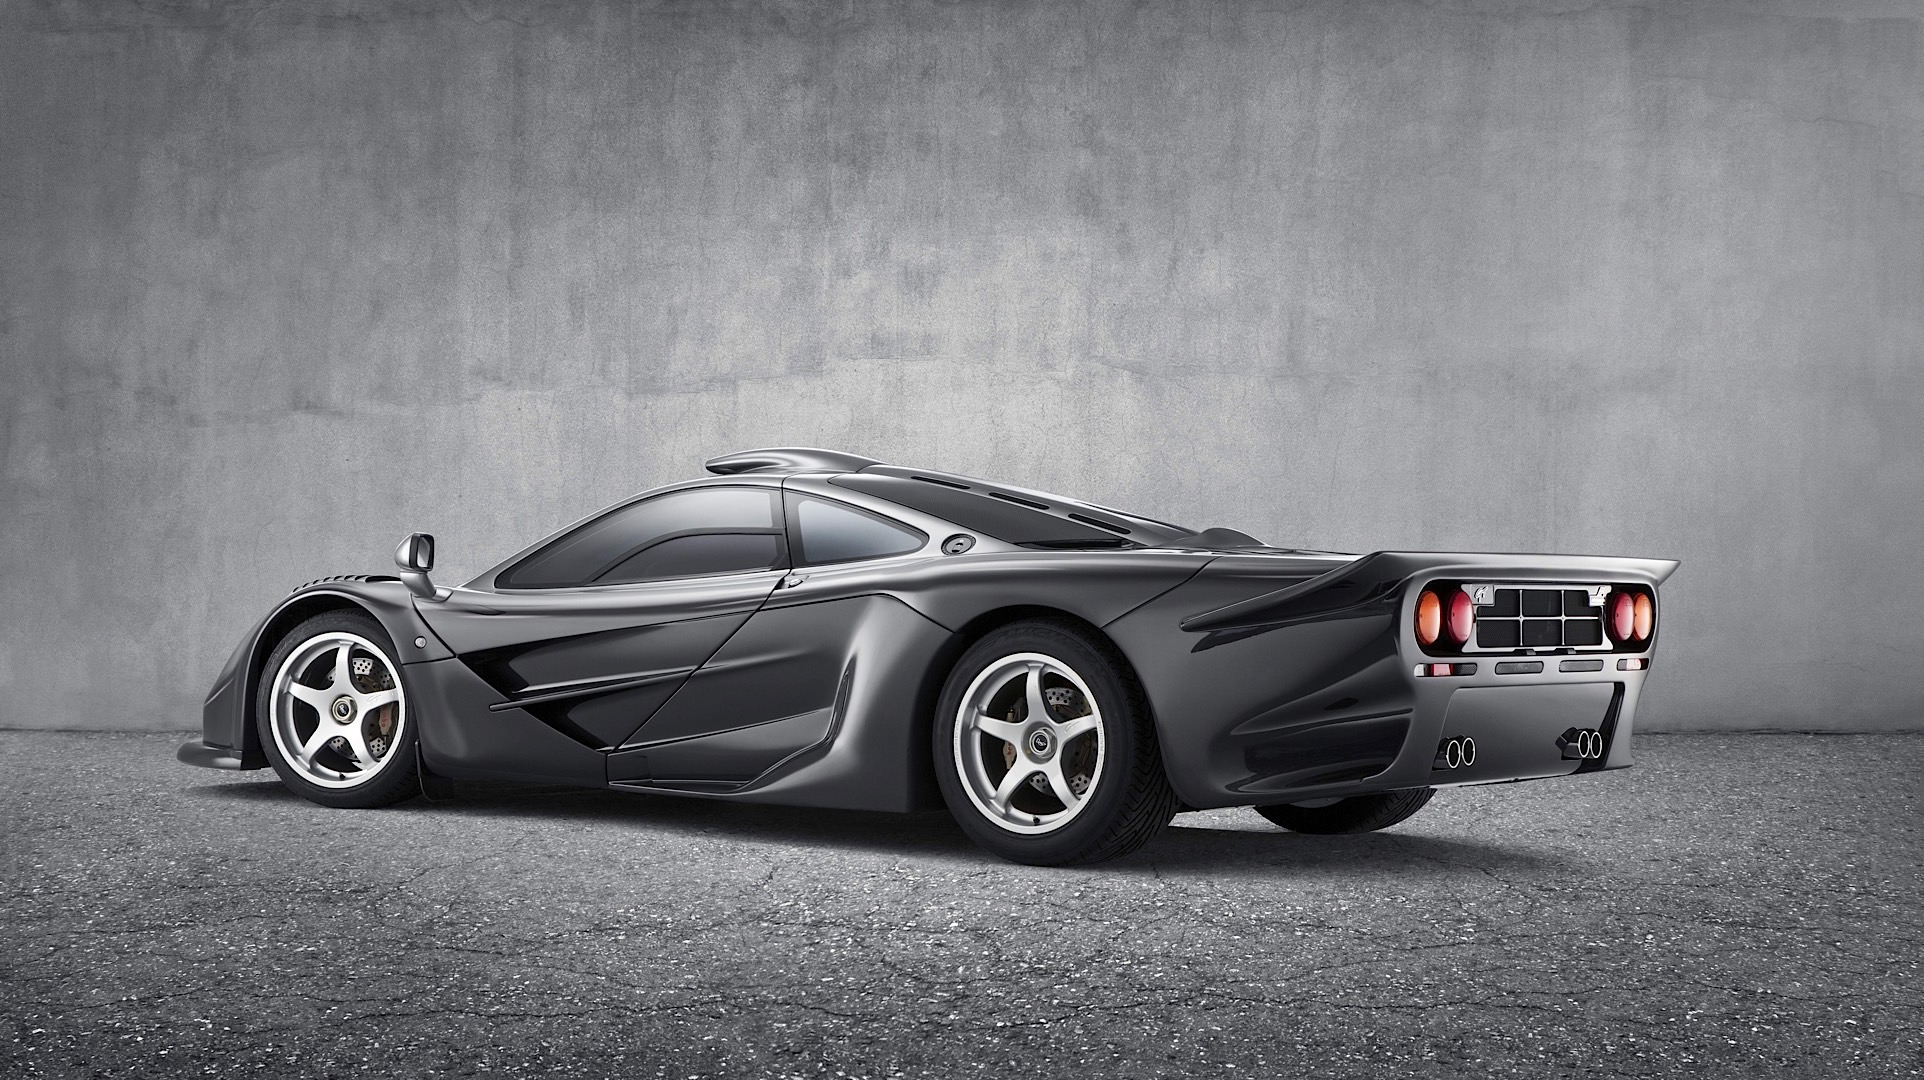 Best Concept Cars Wallpapers Mclaren Brings Alain Prost Inspired P1 And F1 Gt To